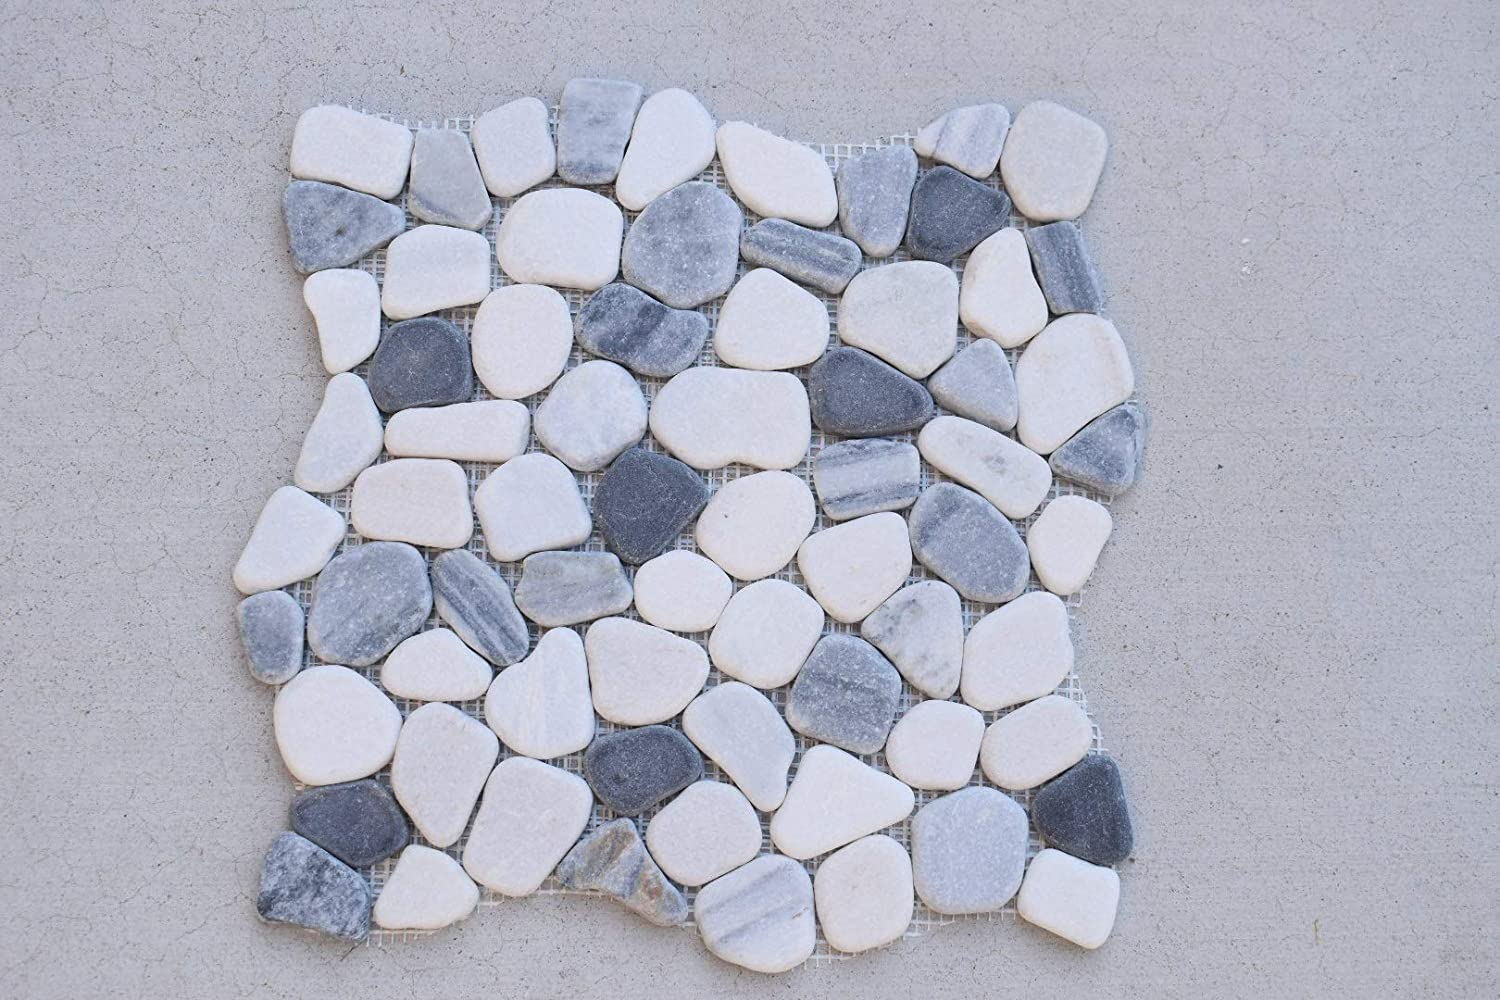 Bathroom Quick and Easy Grout Installation Interlocking Pebble Floor Tiles Natural Jade Stones Indoor and Outdoor Use Kitchen and Patio Flooring 5-Pack